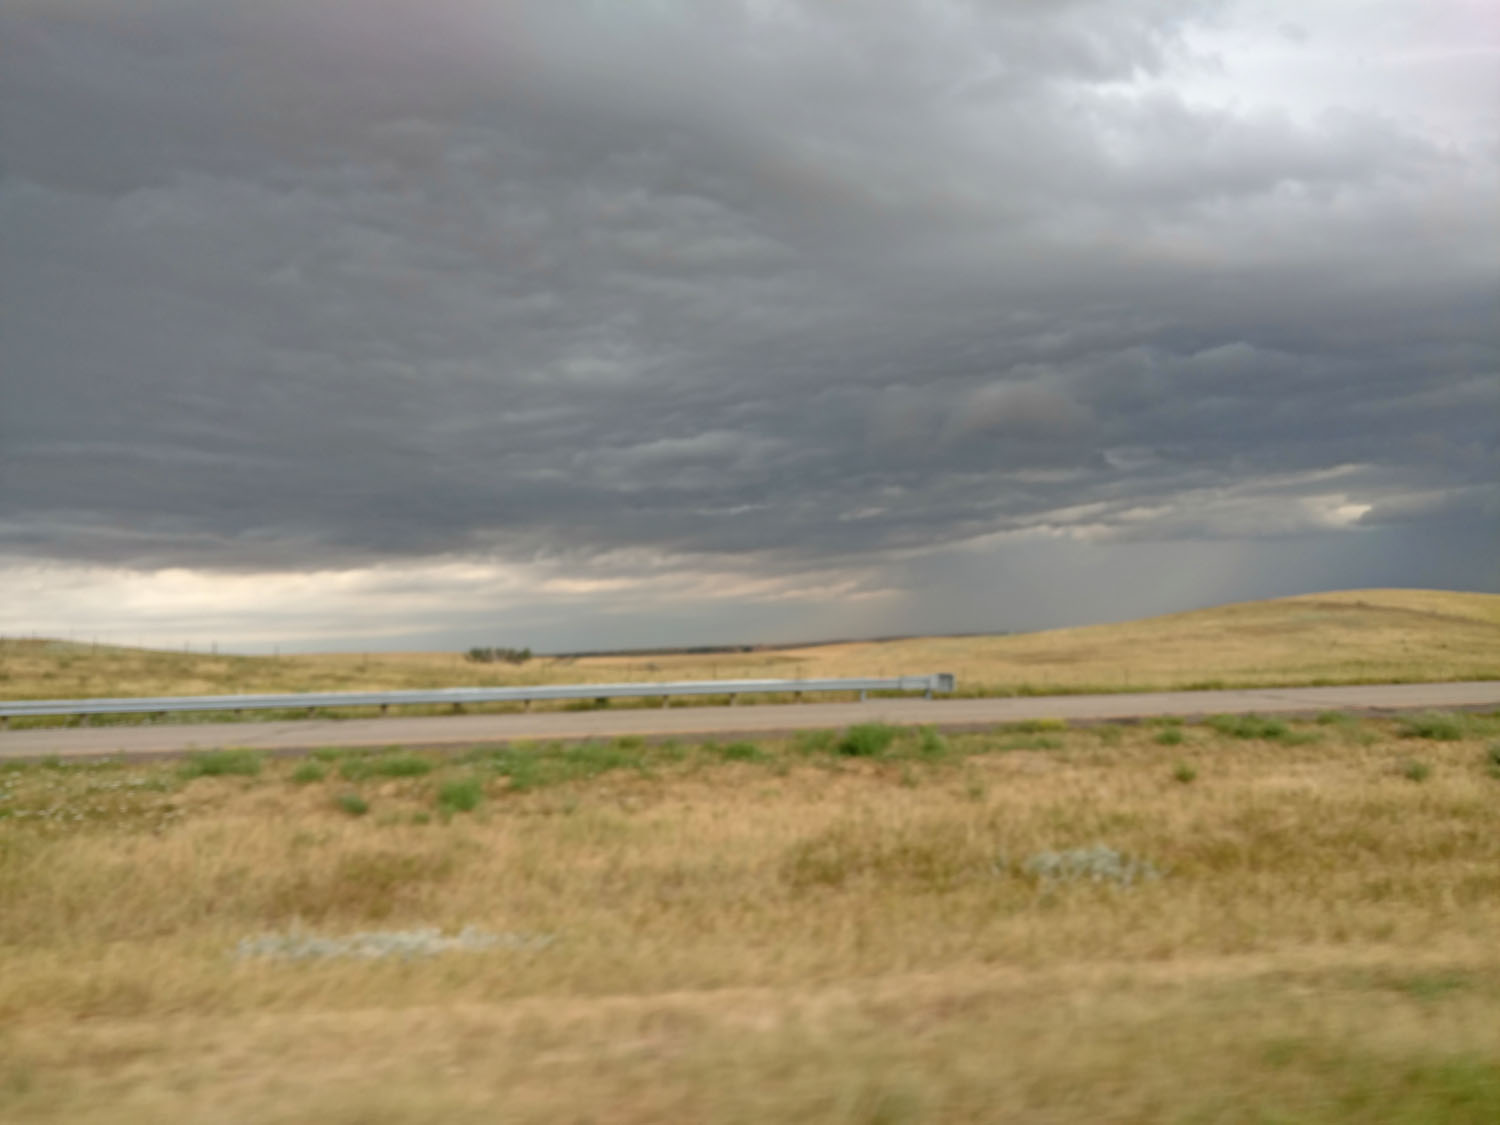 Storm clouds moving in, taken on the road this summer along I-90 somewhere in Wyoming